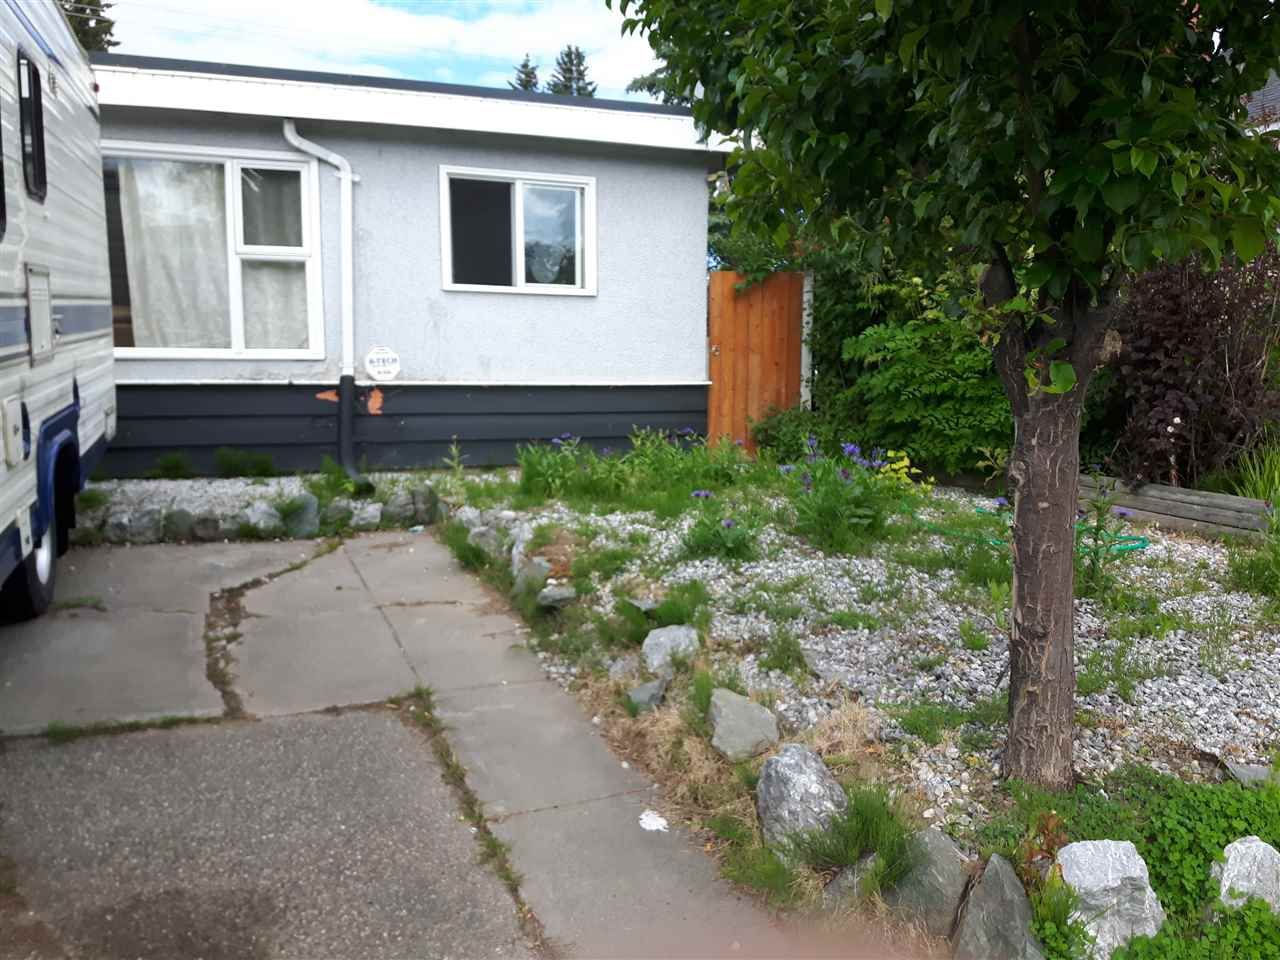 Main Photo: 687 BURDEN Street in Prince George: Central House for sale (PG City Central (Zone 72))  : MLS®# R2283895